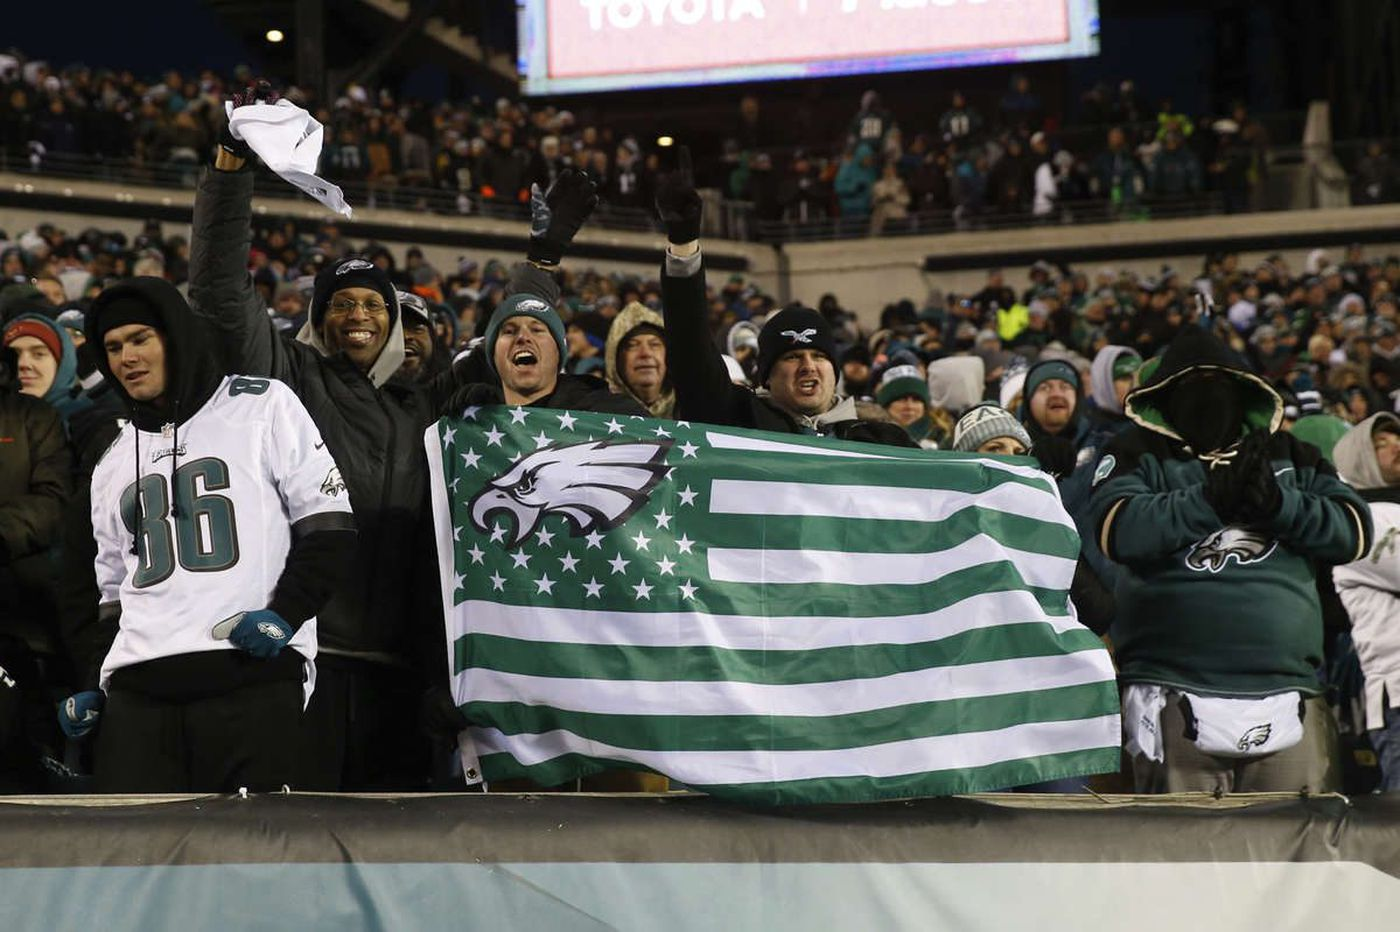 Eagles Super Bowl watch party at the Linc? If they win, Philly fans deserve it | Ronnie Polaneczky